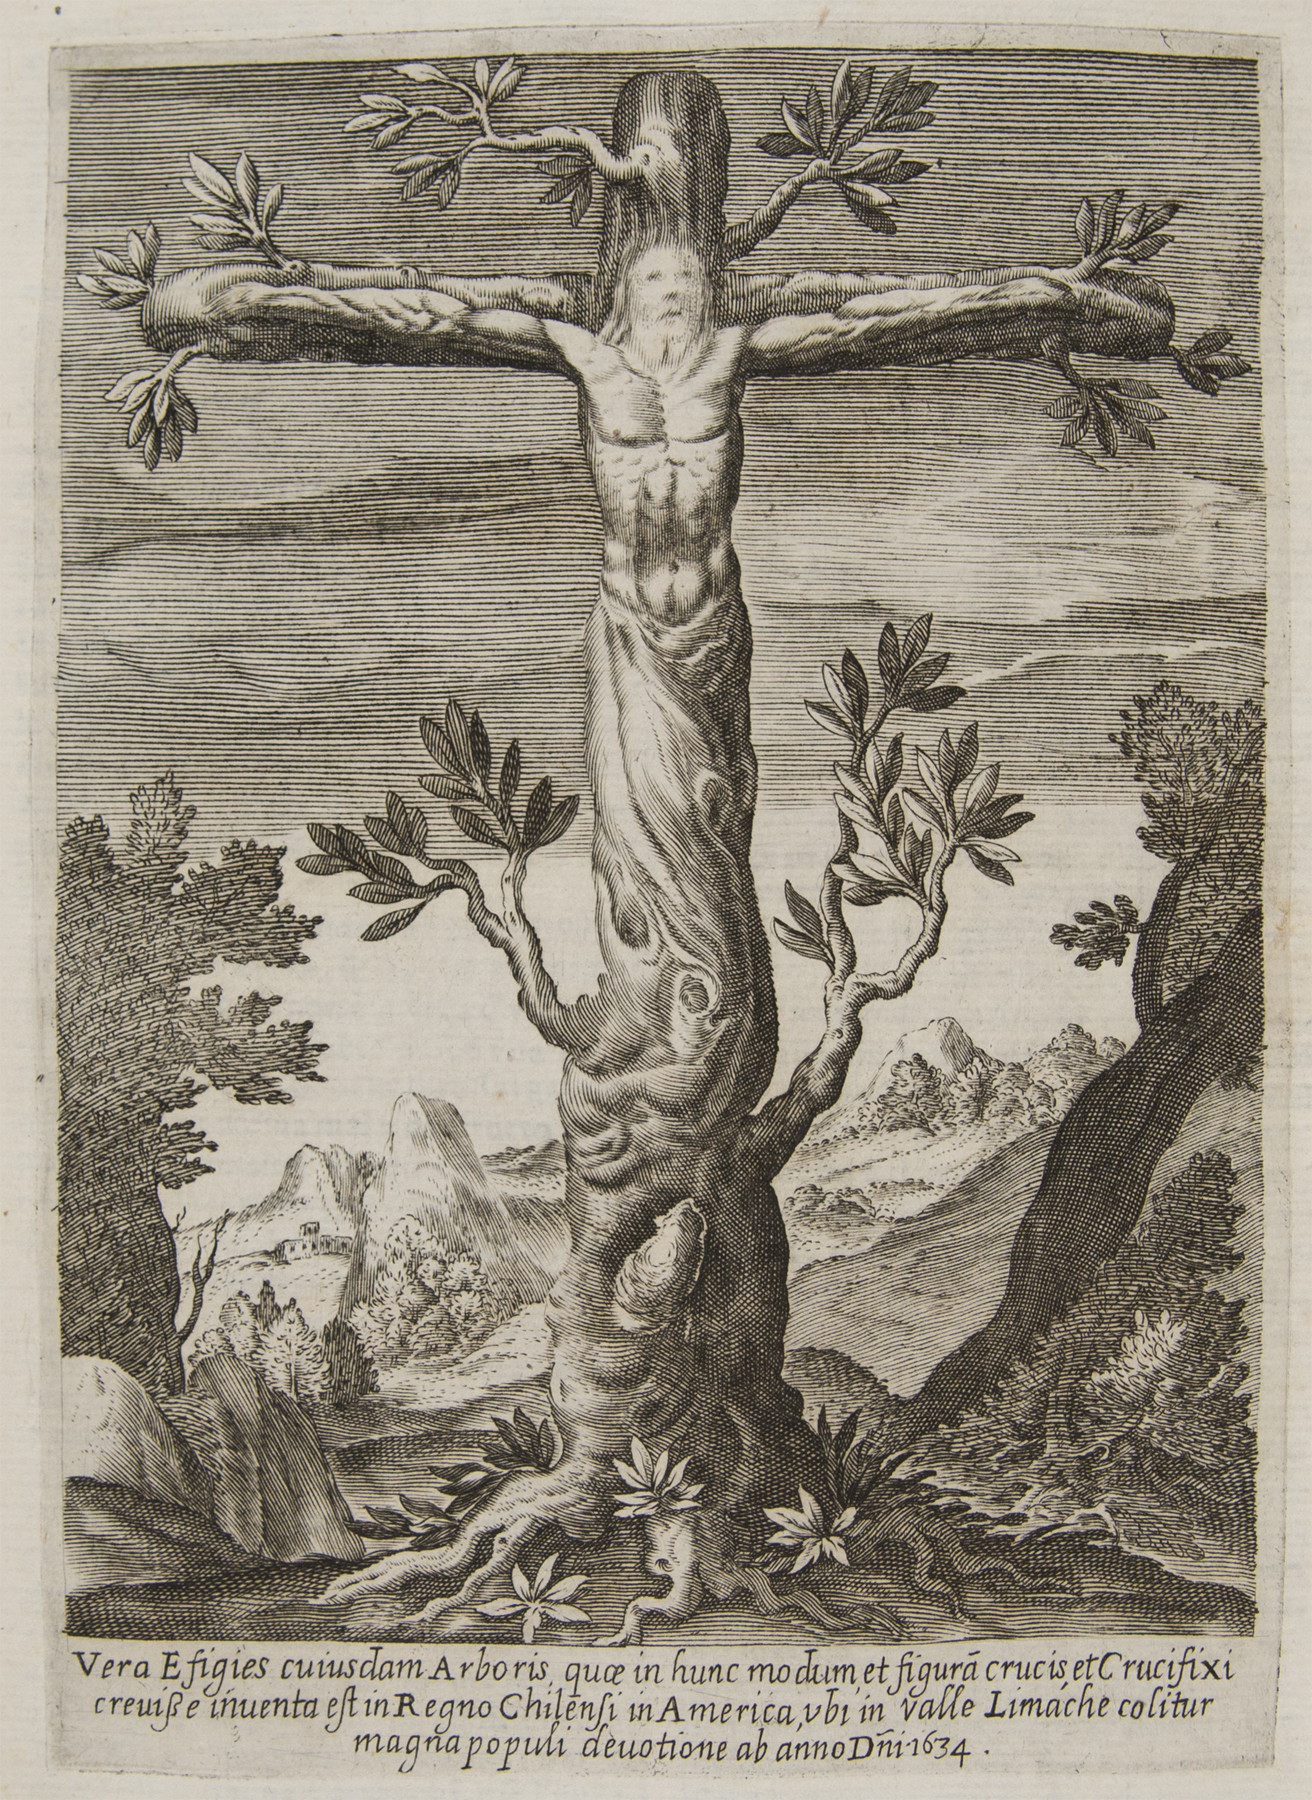 Alonso de Ovalle Crucifix tree